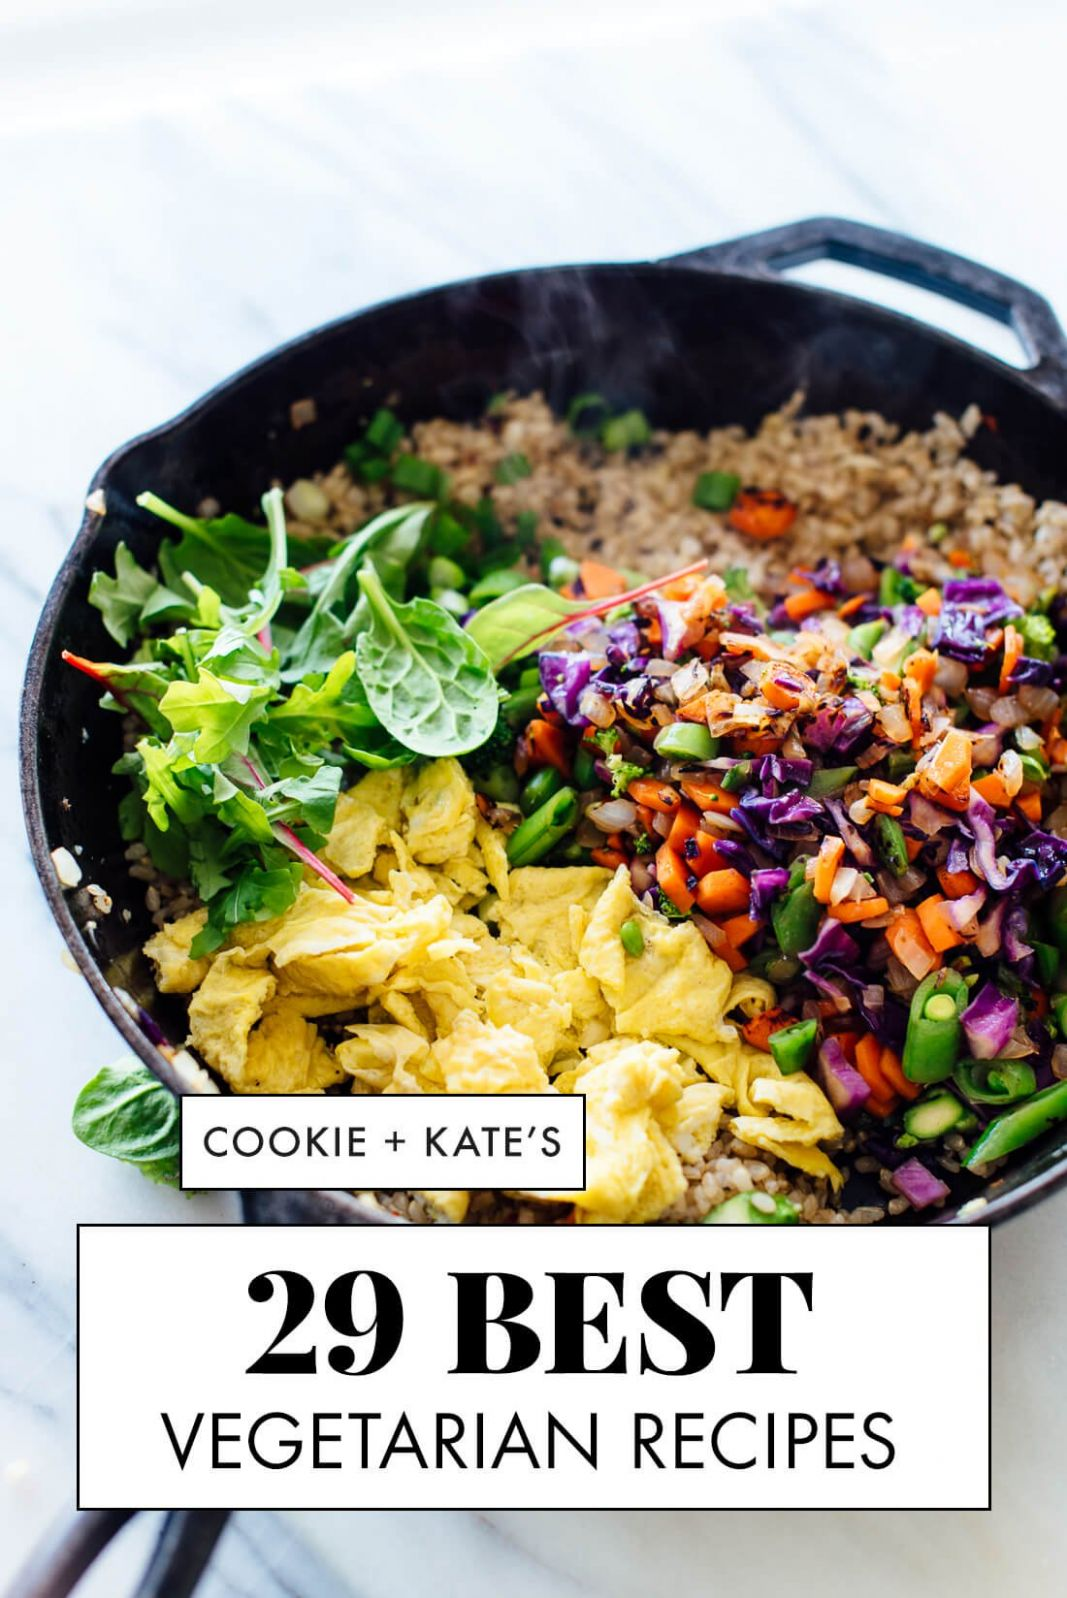 8 Best Vegetarian Recipes - Cookie and Kate - Recipes Vegetarian Lunch